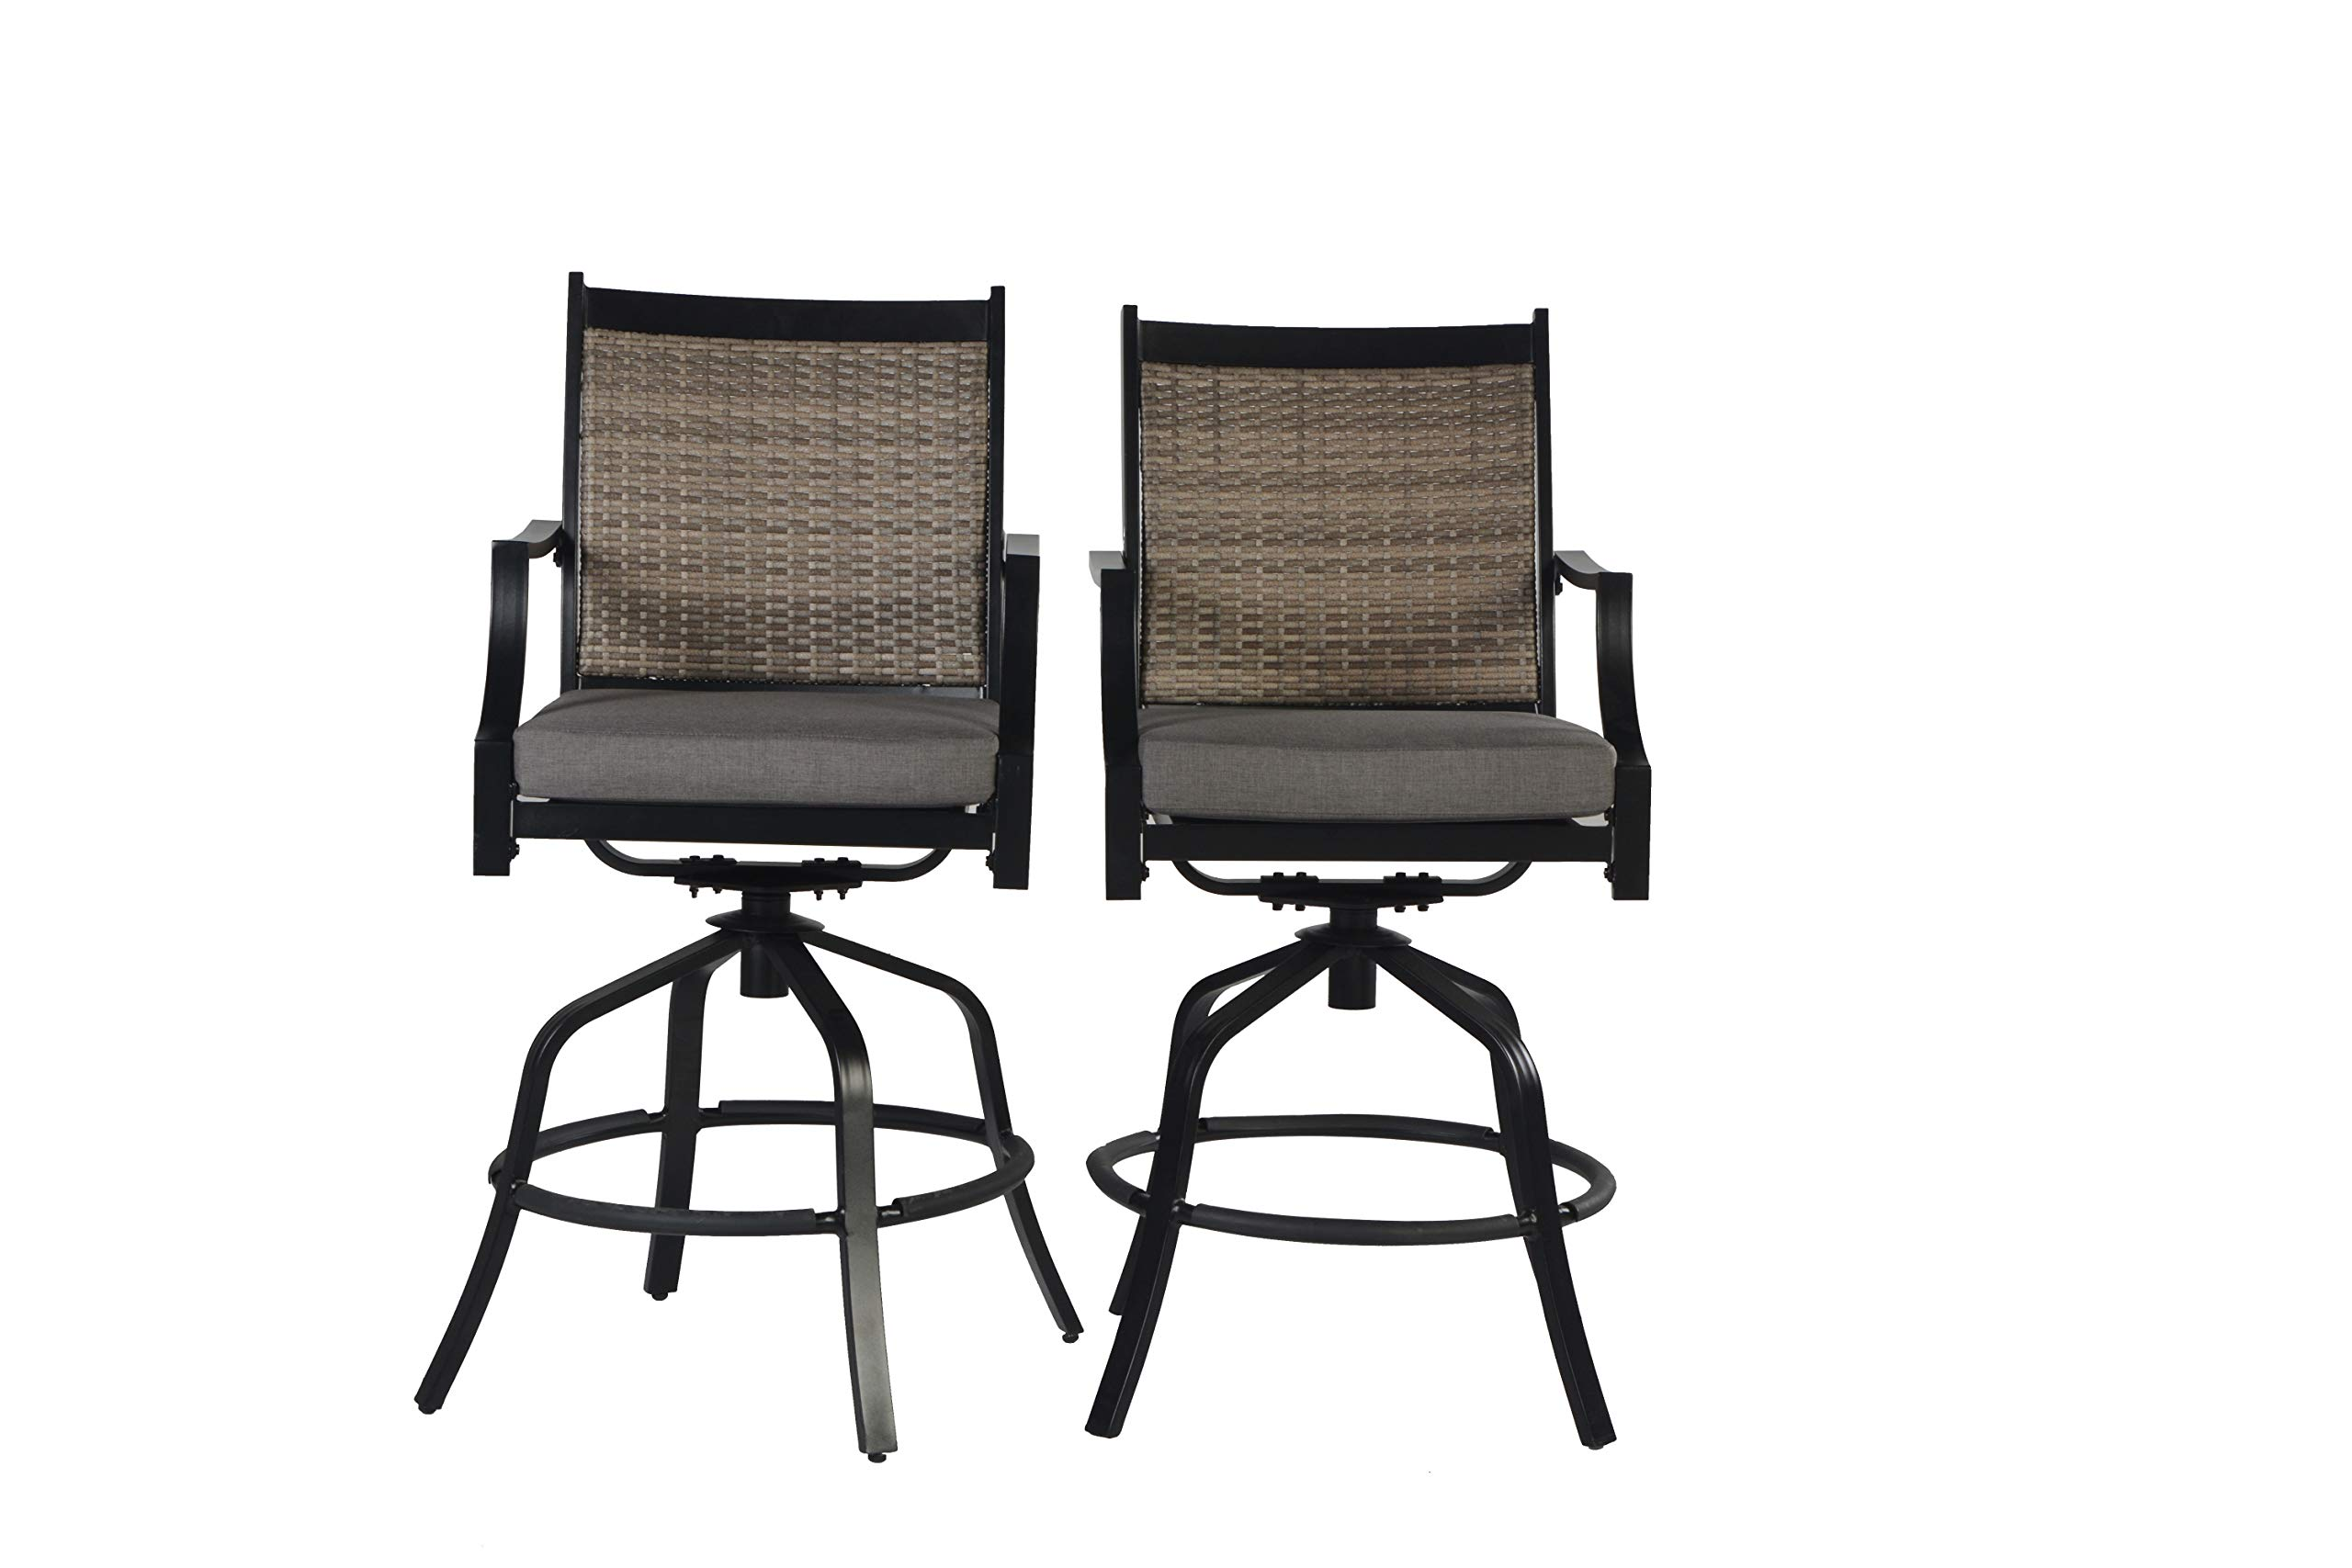 Pebble Lane Living All Weather Rust Proof Indoor/Outdoor Powder Coated Aluminum Swivel Wicker Patio Bar Arm Stools, Premium All Season Olefin Cushions, Black/Grey, 24'' W x 32'' x 49'' H, Set of 2